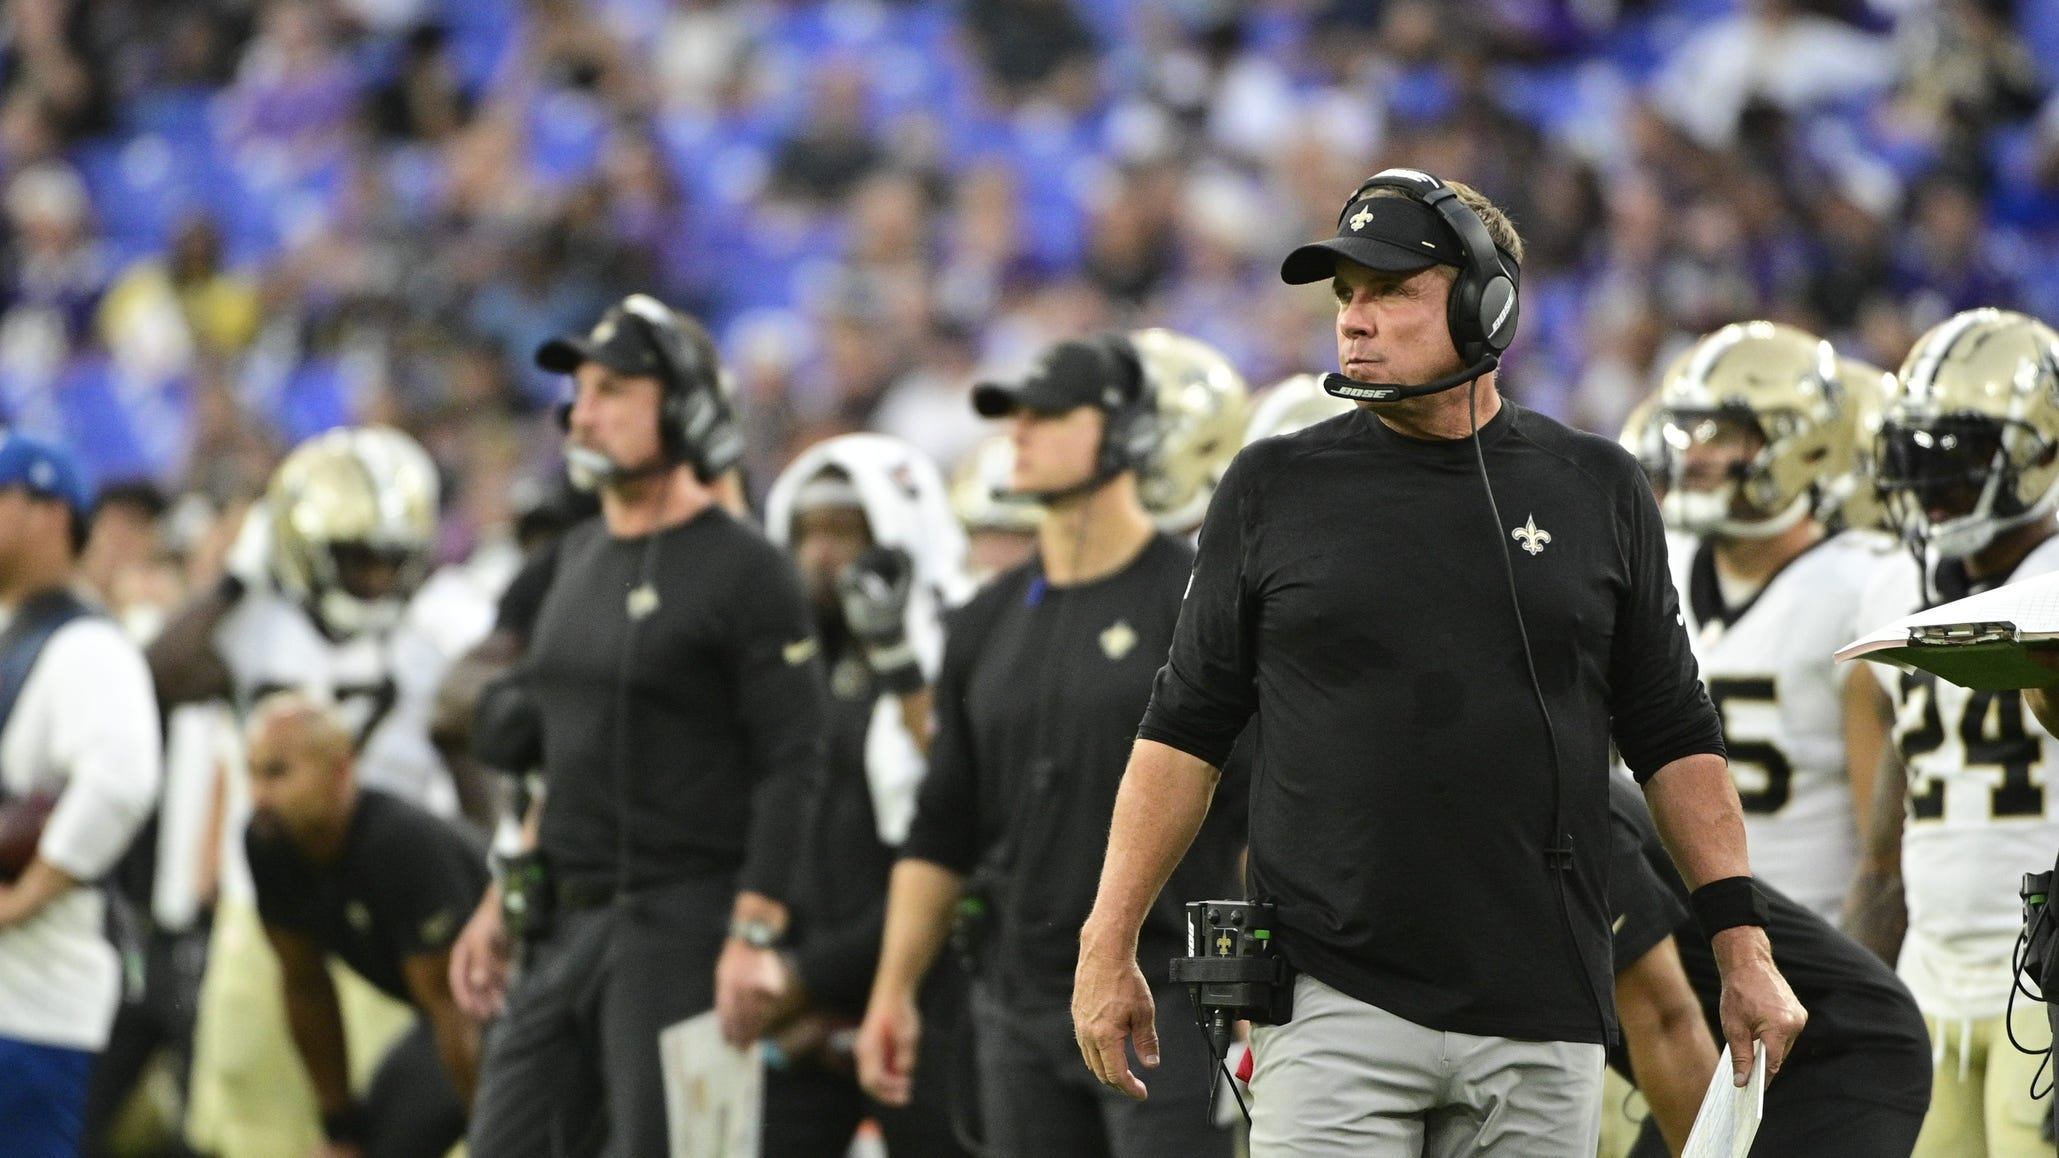 Saints make flurry of roster moves ahead of Week 2; OL coach clears COVID protocols